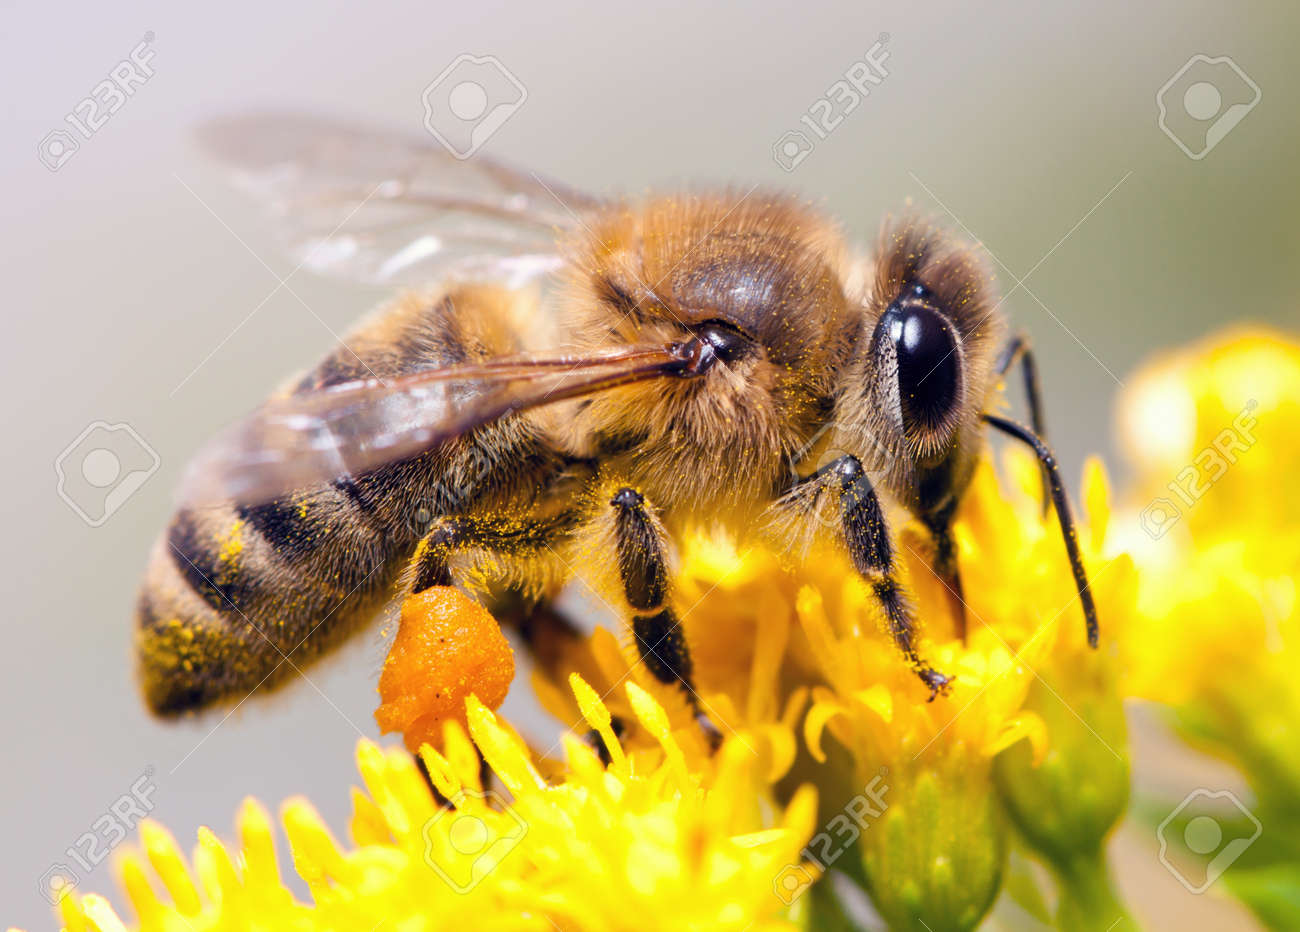 Bees collecting nectar from flower - 8703067